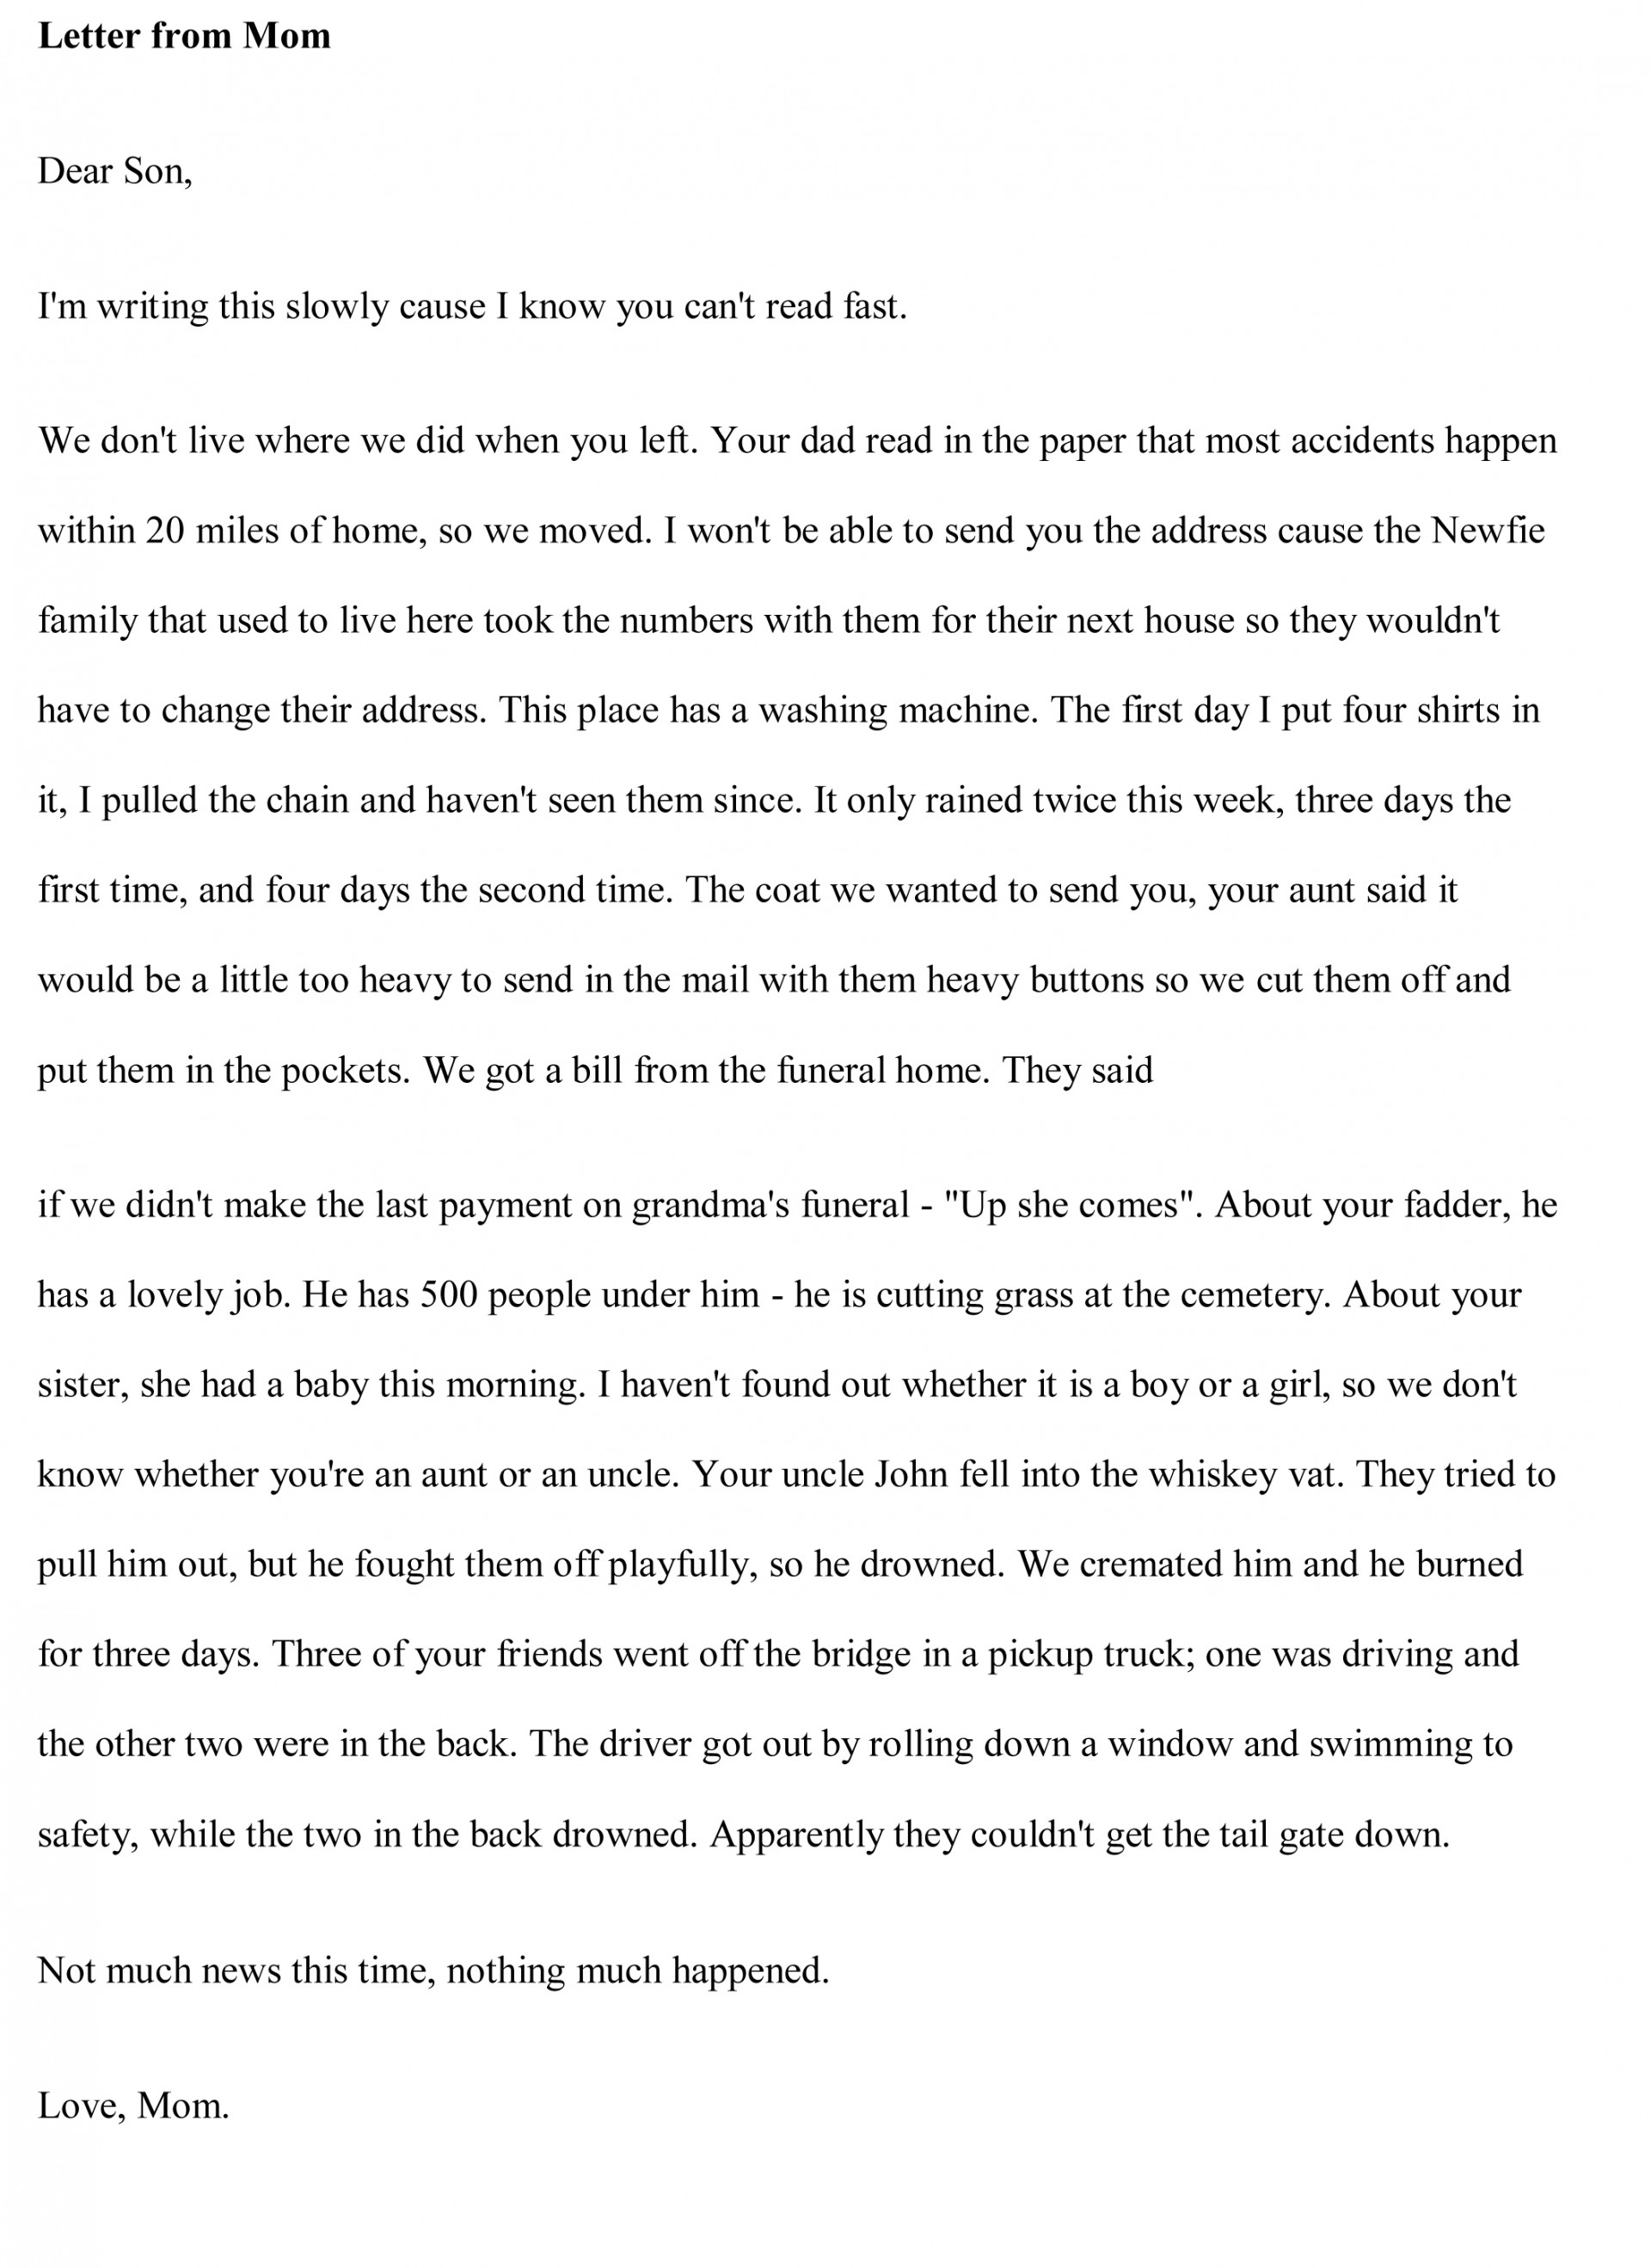 005 Research Paper Funny Essay Free Sample Topics To Do Marvelous A On 1920